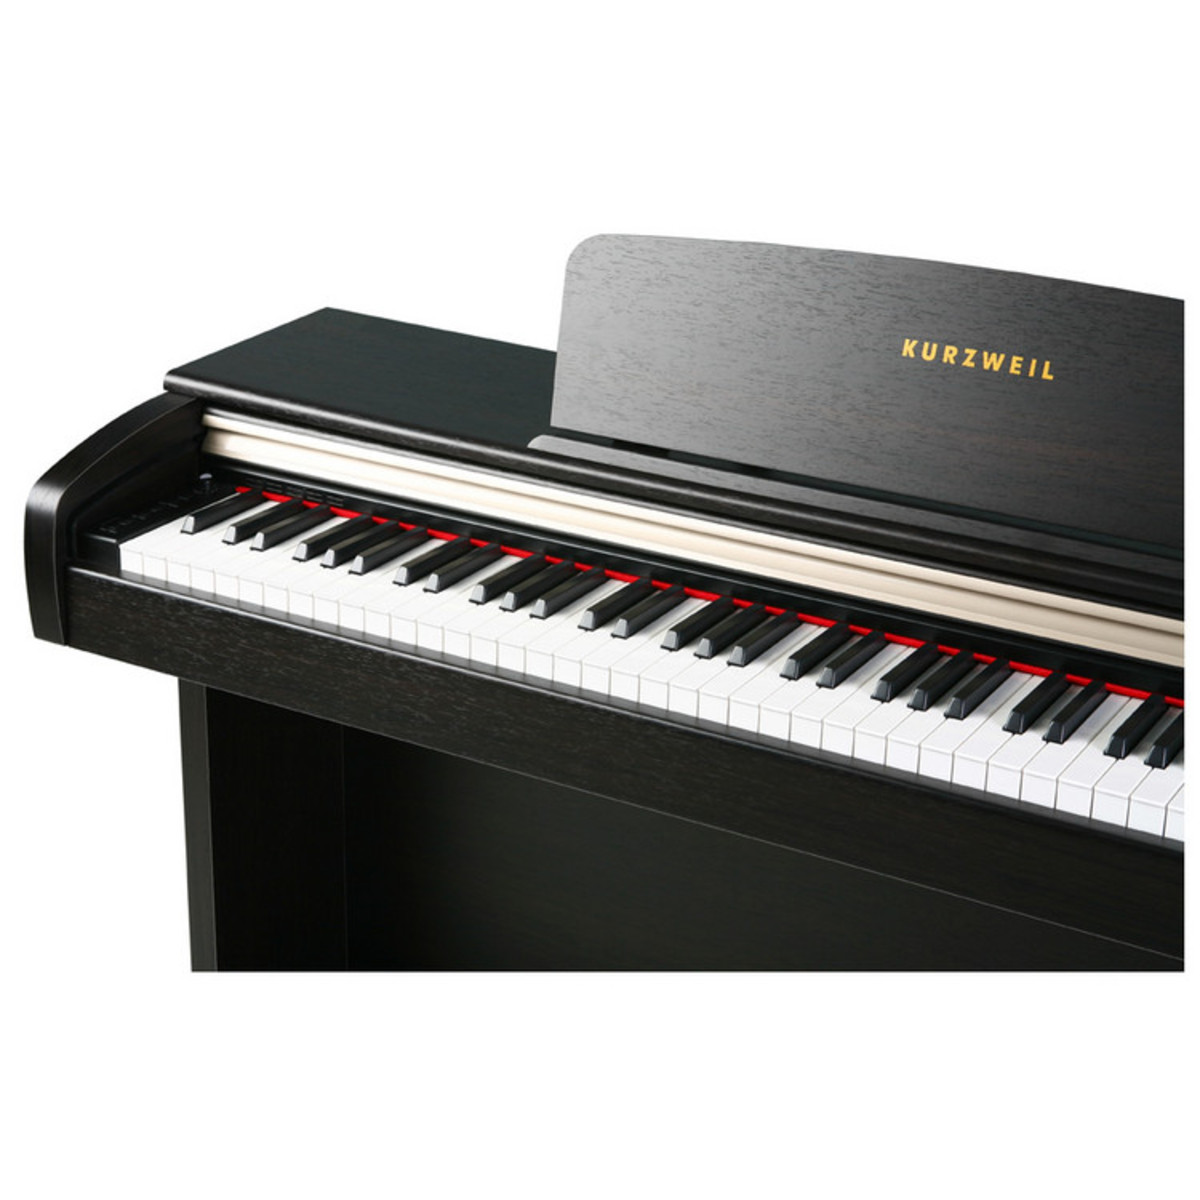 Digital Piano The One : disc kurzweil mark pro one i digital piano simulated rosewood at gear4music ~ Hamham.info Haus und Dekorationen